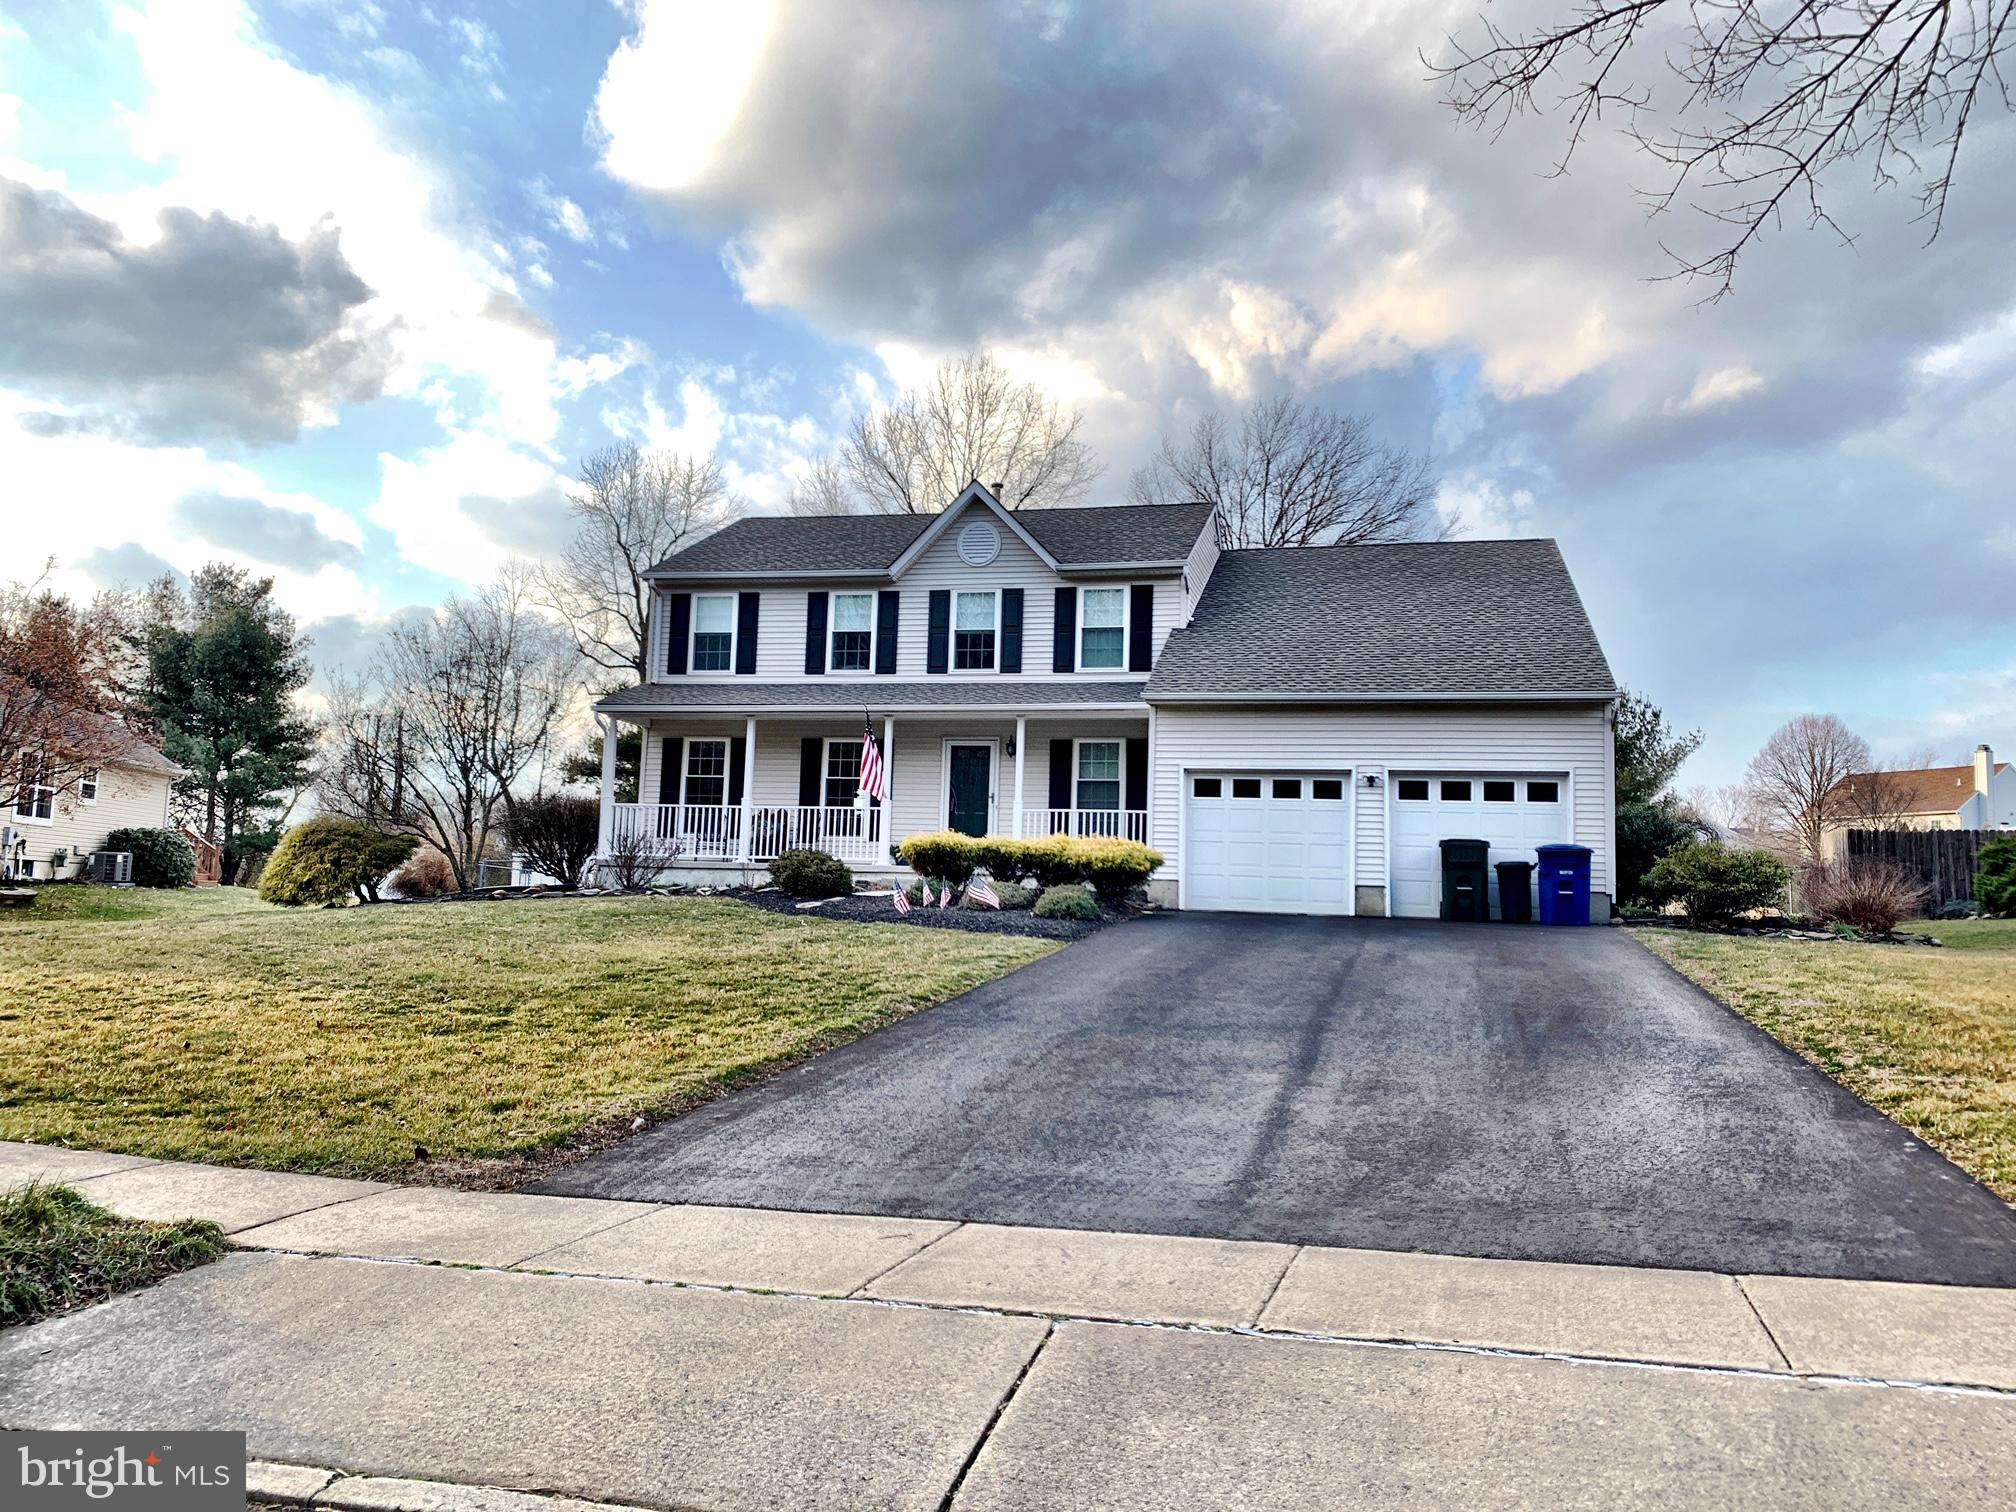 26 VALLEY FORGE ROAD, BORDENTOWN, NJ 08505